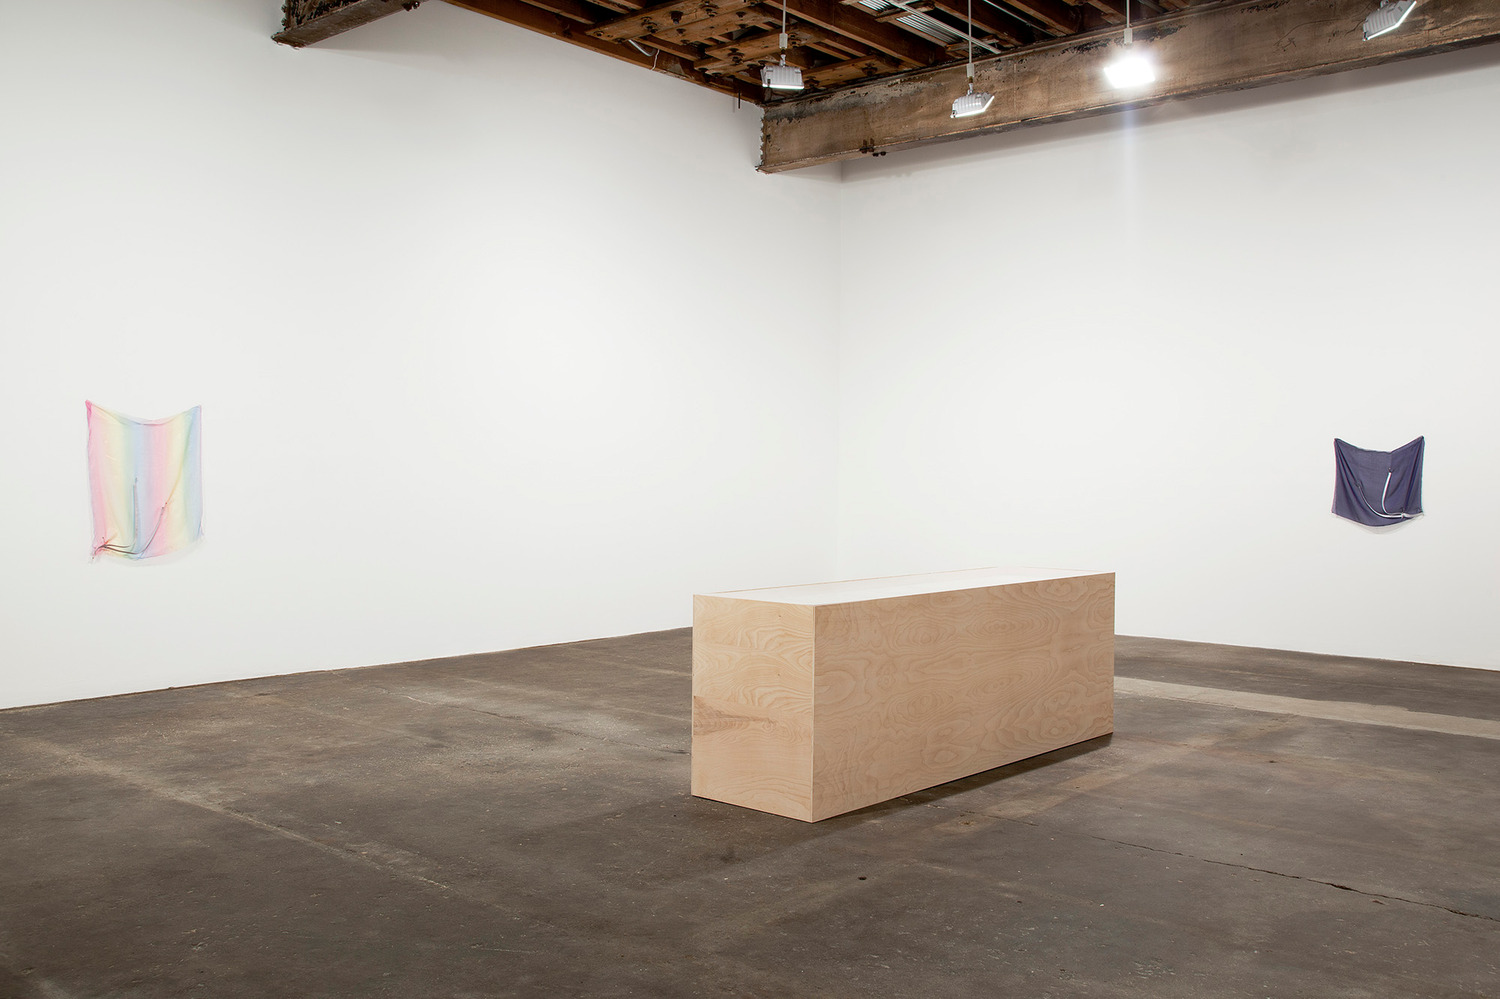 Installation view, 'Its chiming in Normaltown', Midway Contemporary Art, Minneapolis, 2012